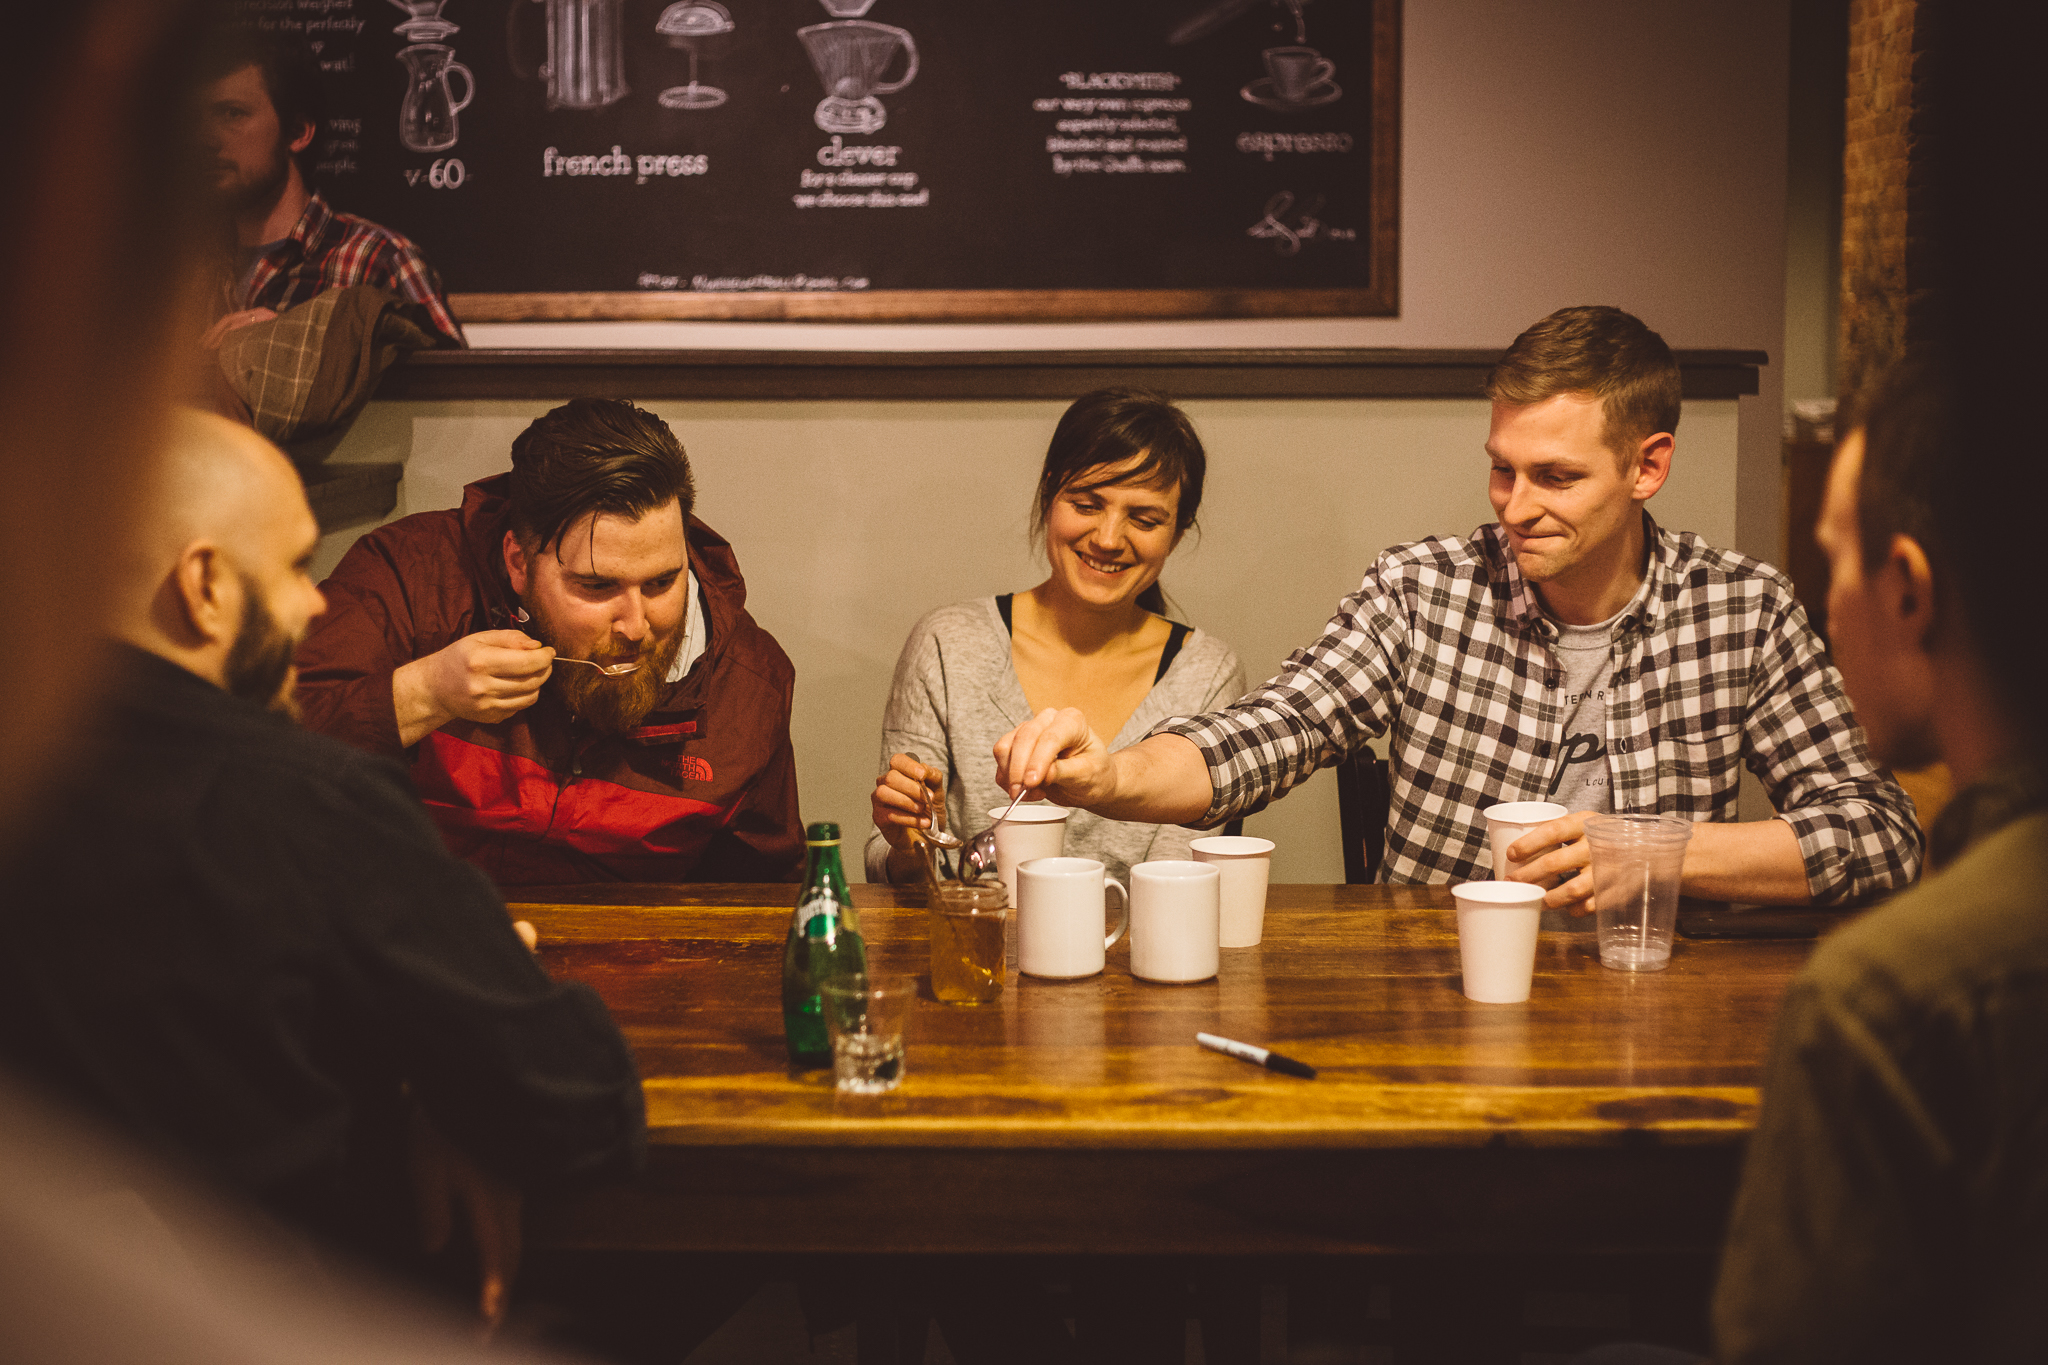 Judges about to slurp some coffee in the final round